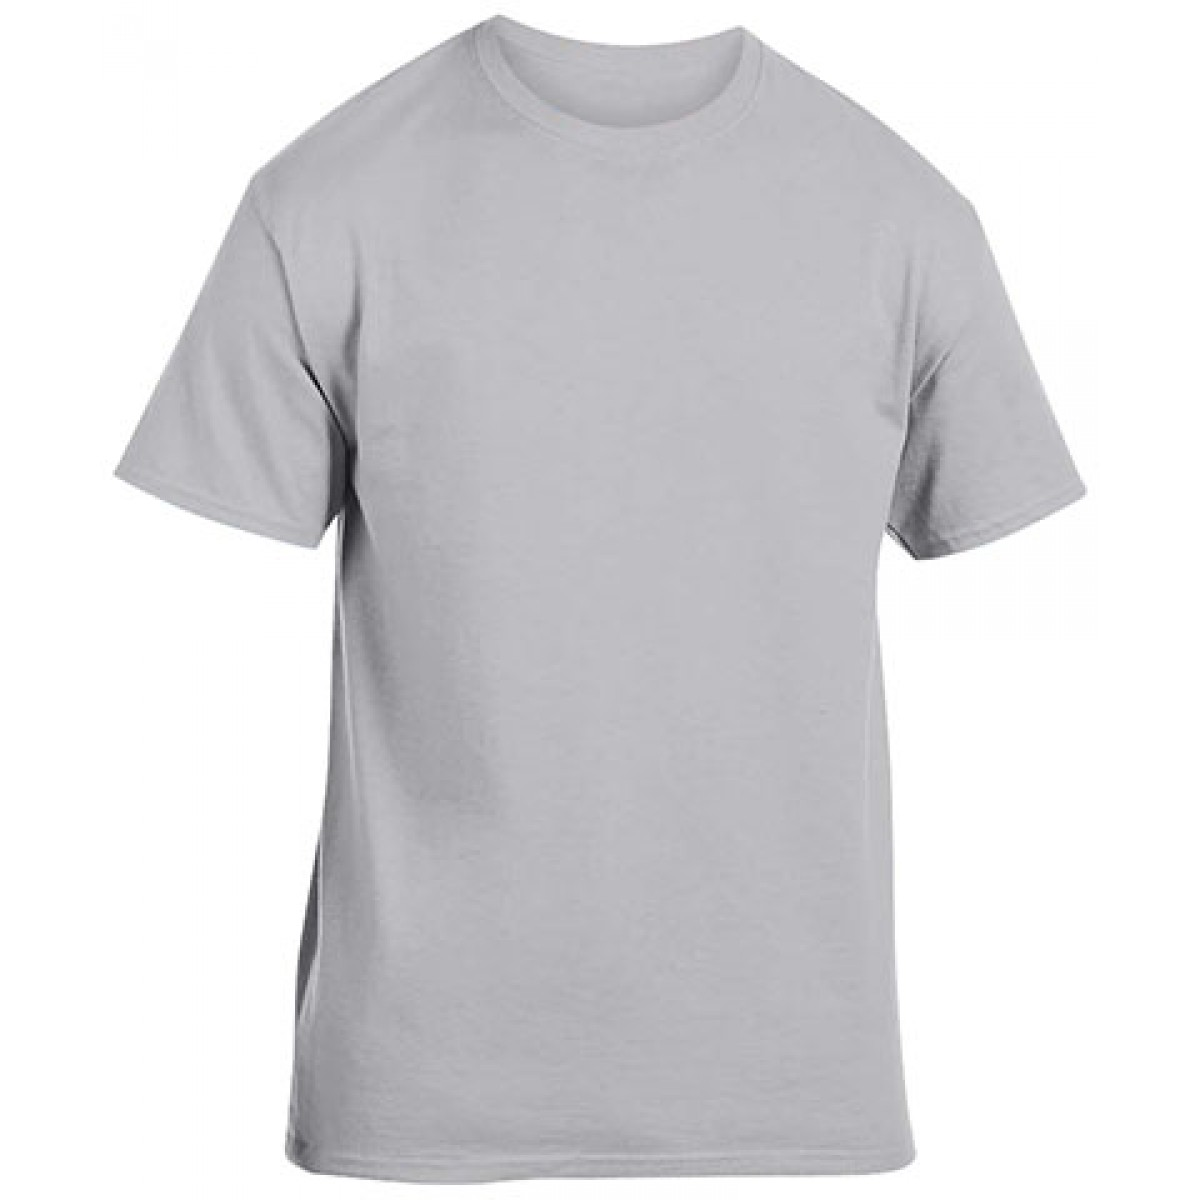 Cotton Short Sleeve T-Shirt-Gray-YL